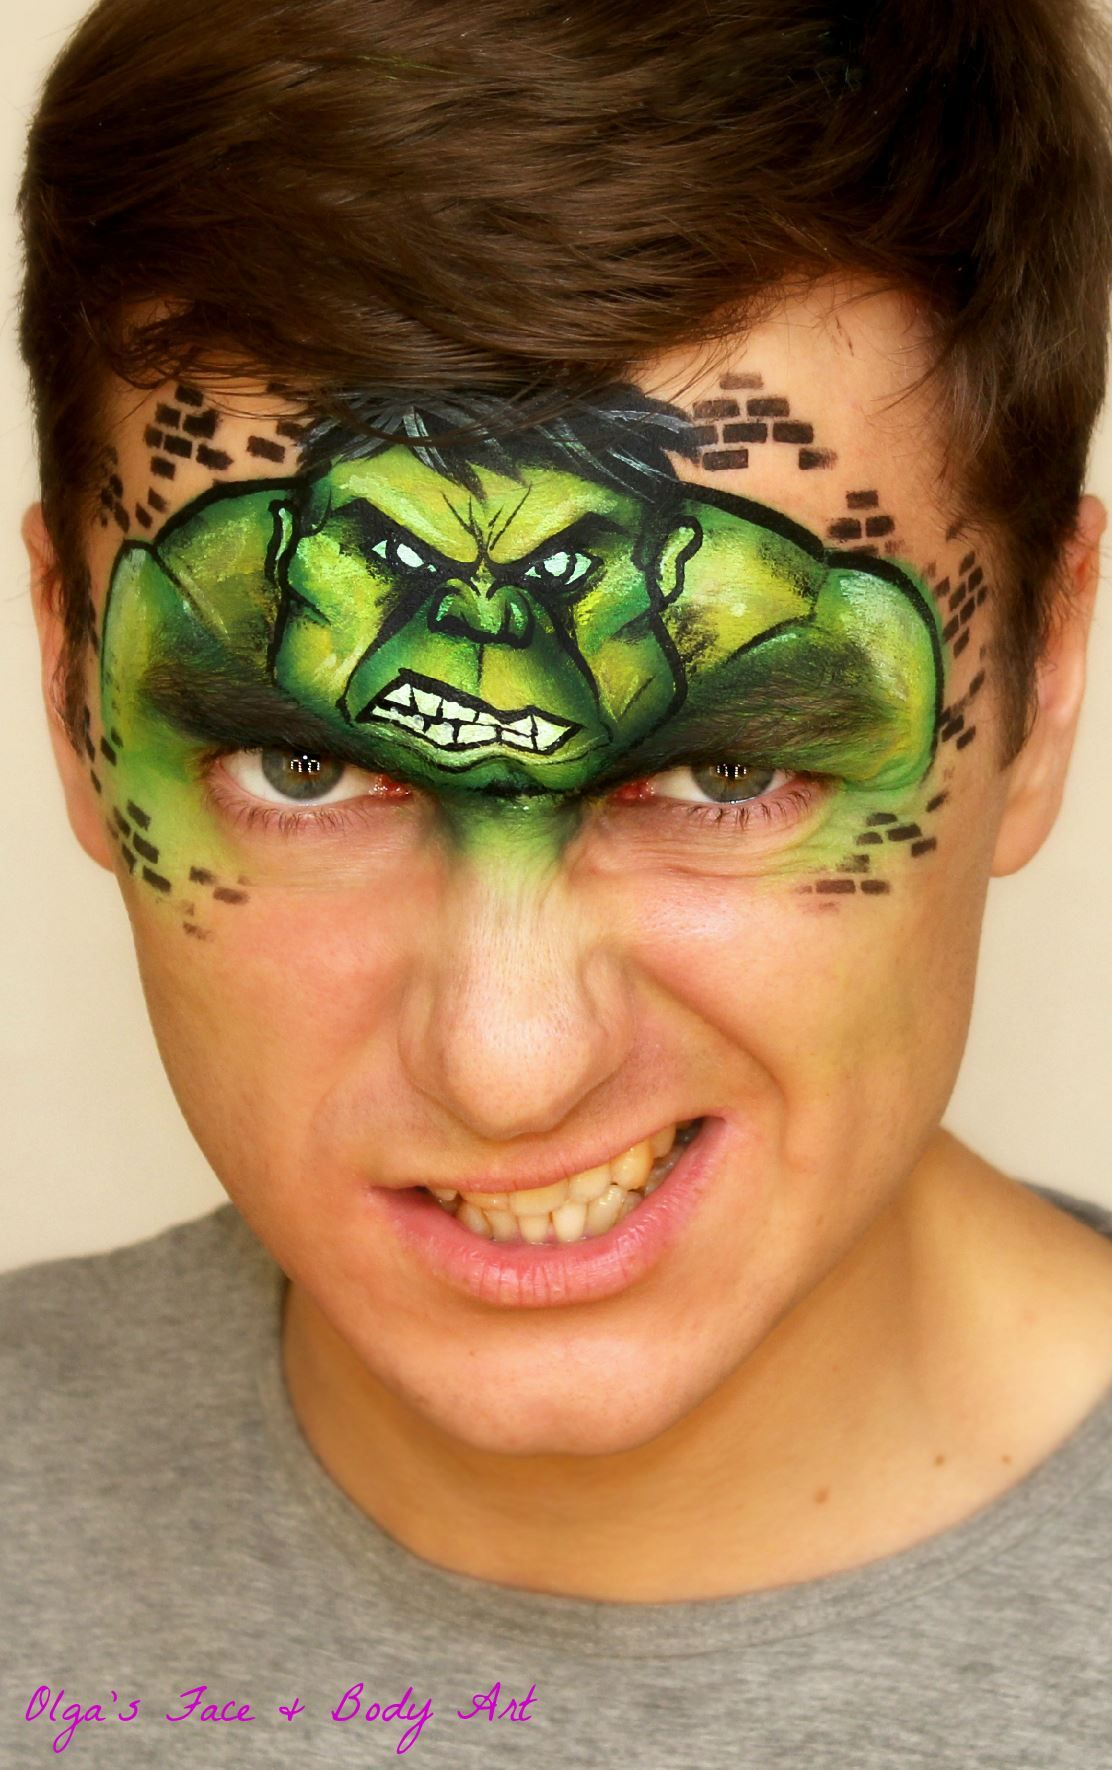 The Incredible Hulk Comic Inspired Face Painting Tutorial Design That Boys Will Adore Learn H Hulk Face Painting Face Painting Designs Face Painting For Boys